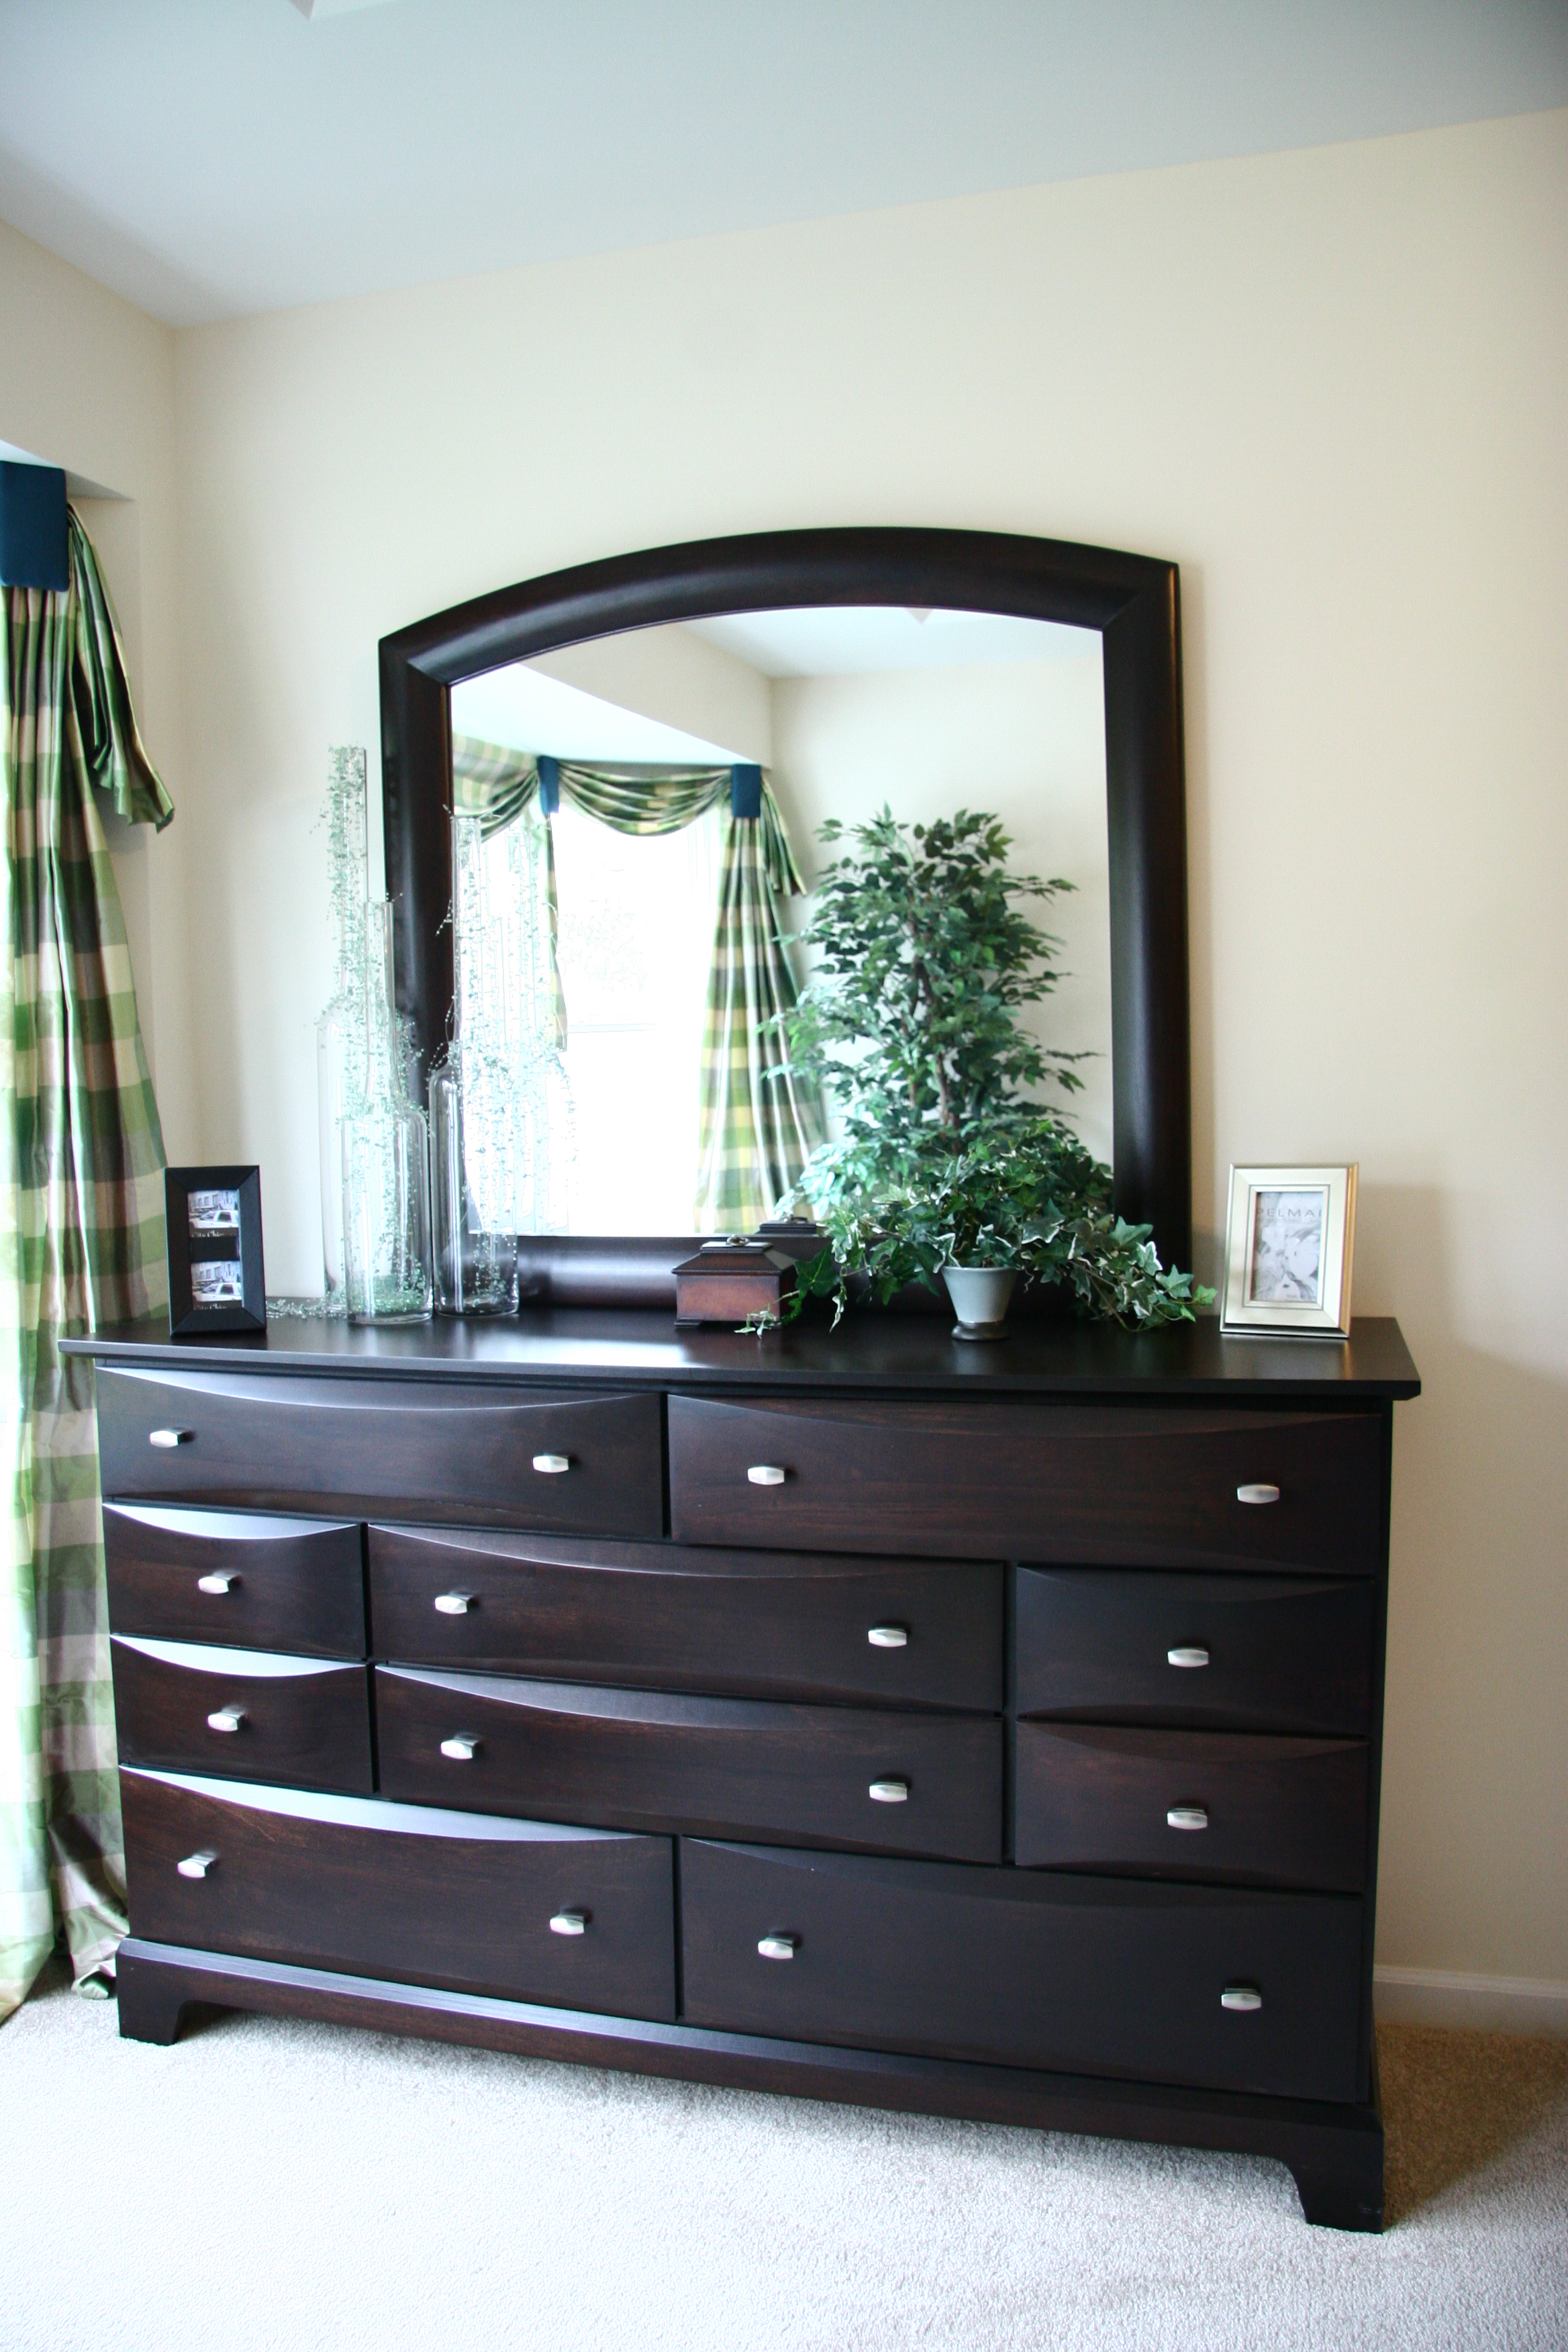 my-creative-designs | Master bedroom dresser